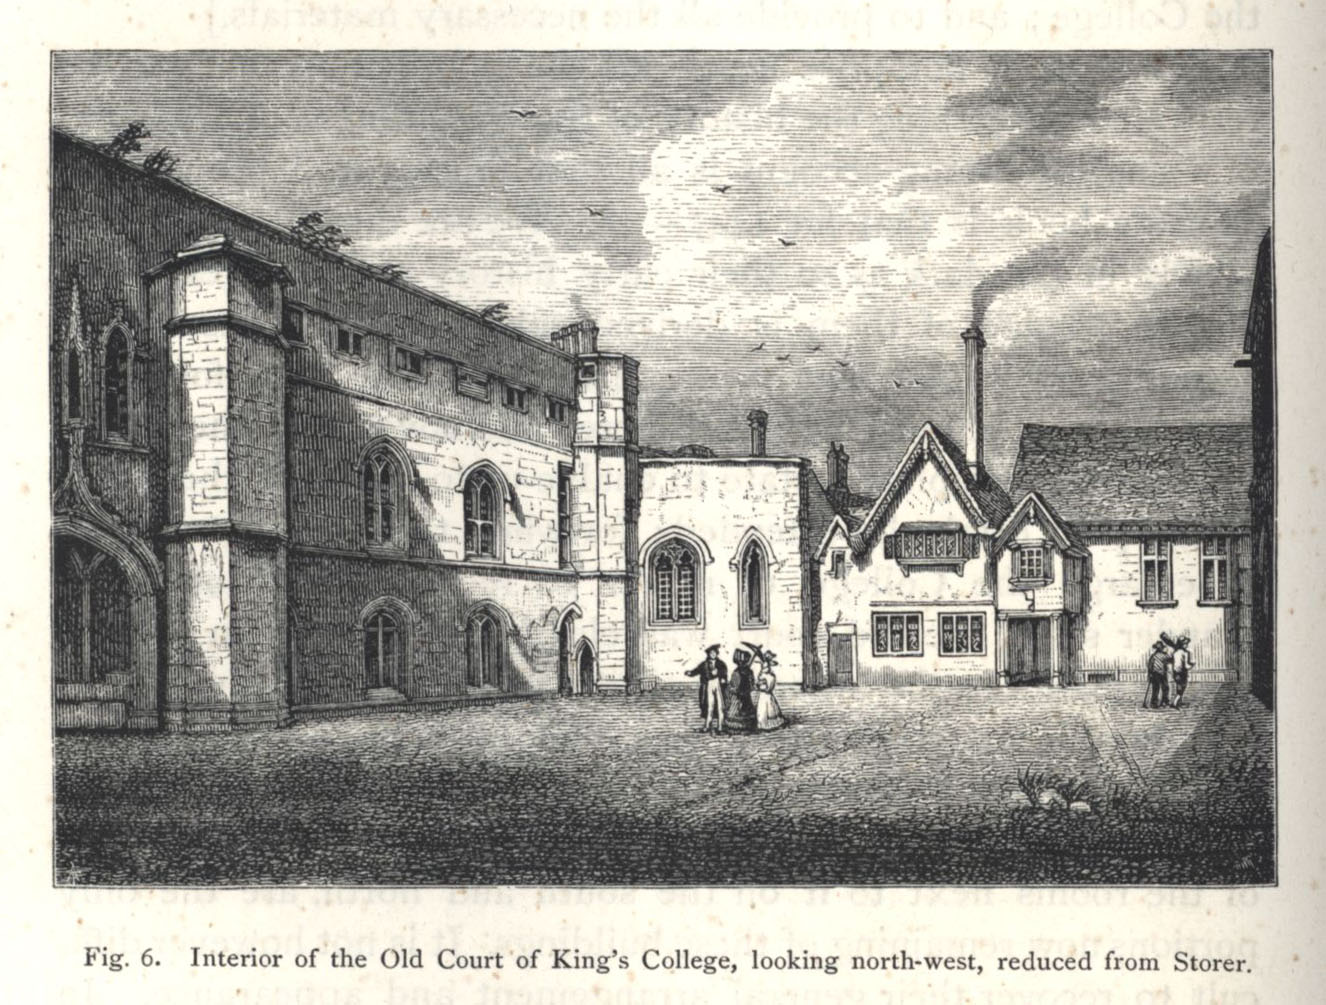 Interior of the Old Court, looking north-west, reduced from a print by Storer, taken about 1830. [Willis and Clark, vol. 1, p. 324, fig. 6]